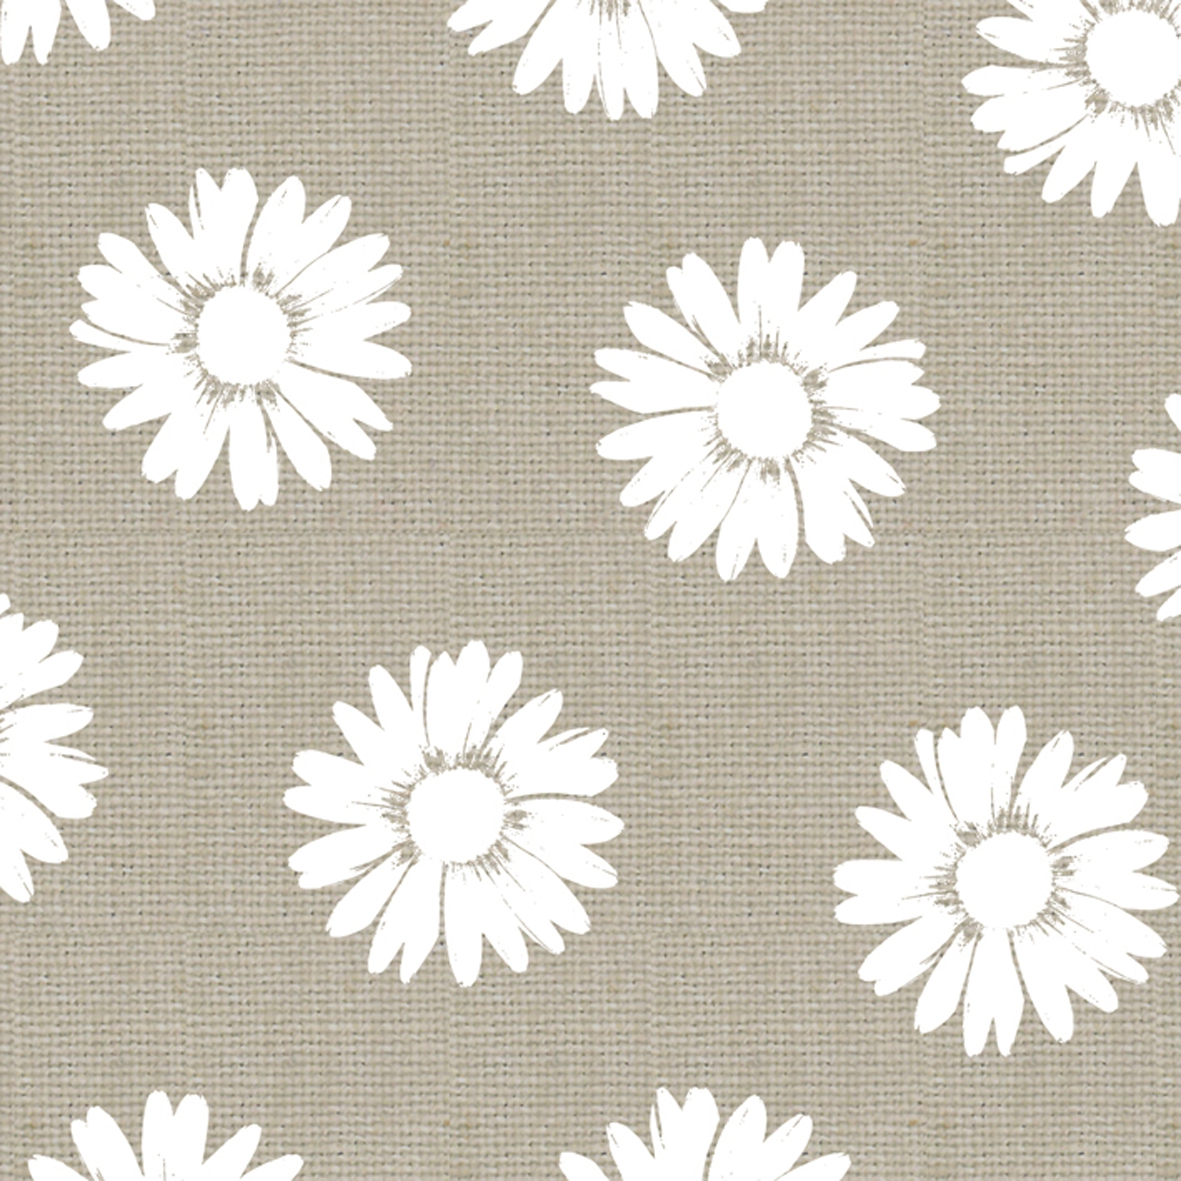 Cocktail Servietten Fashion Daisies taupe white 25x25 cm